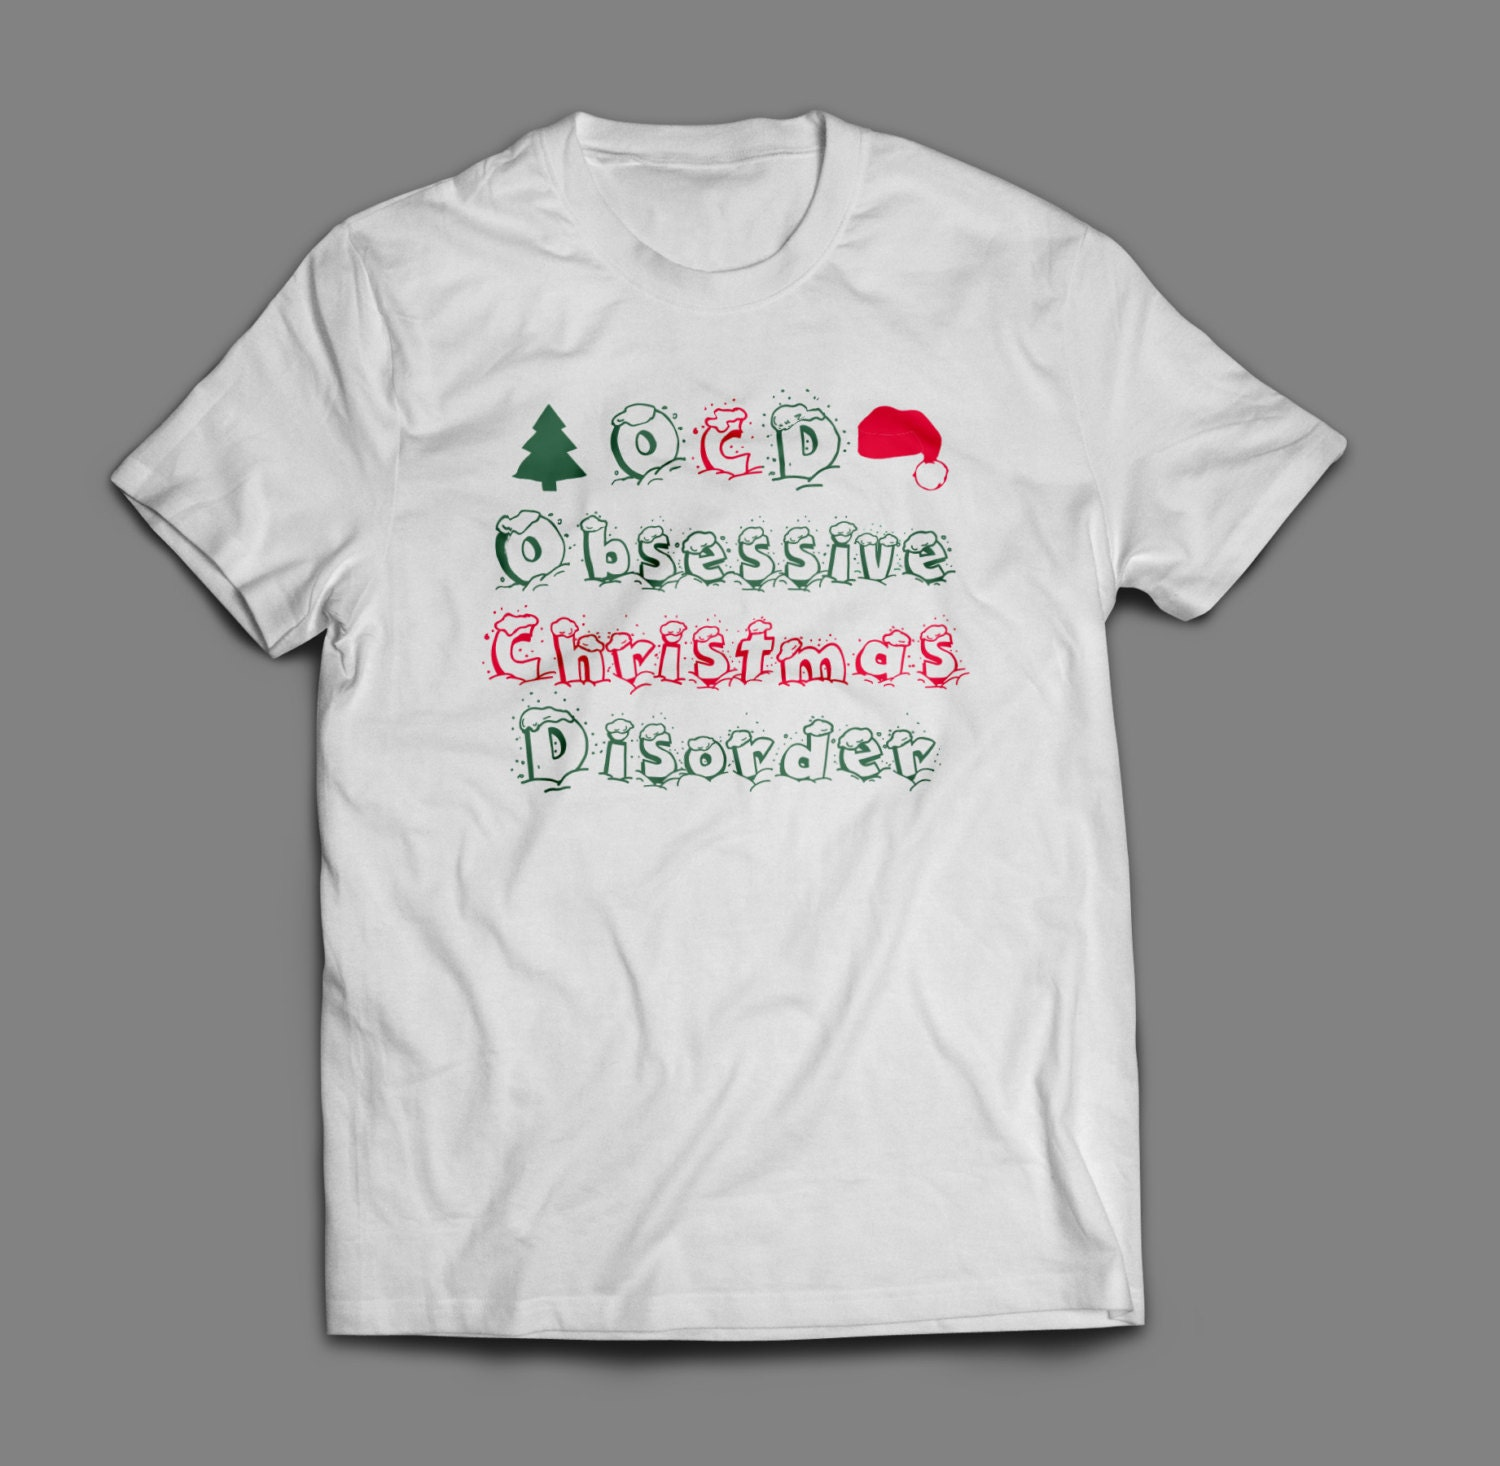 OCD Obsessive Christmas Disorder Shirt S-4XL And Long Sleeve Available